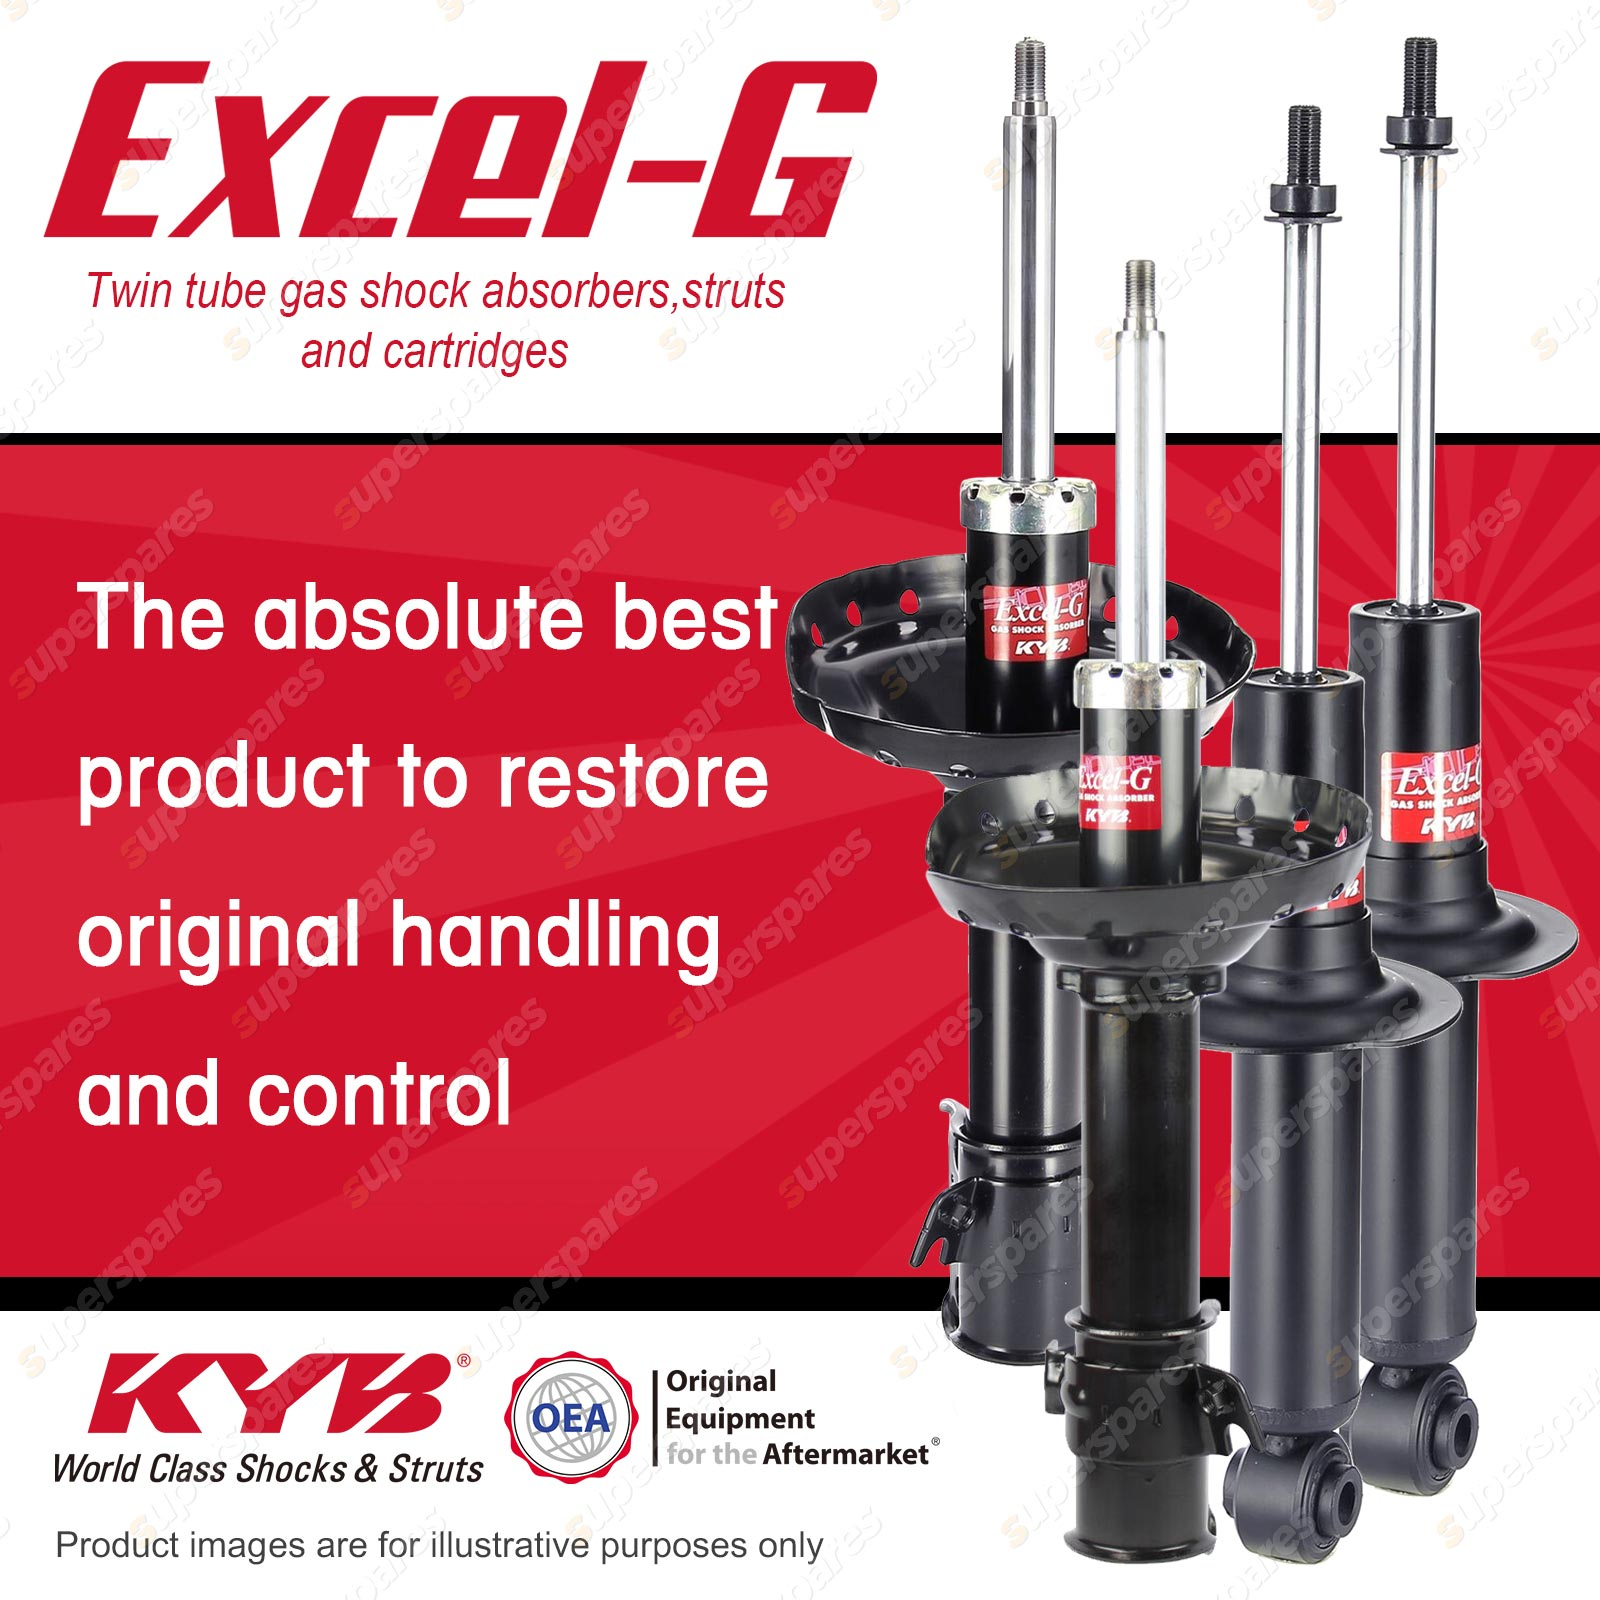 hight resolution of front rear kyb excel g shock absorbers for subaru outback bp9 ej253 2 5 f4 awd